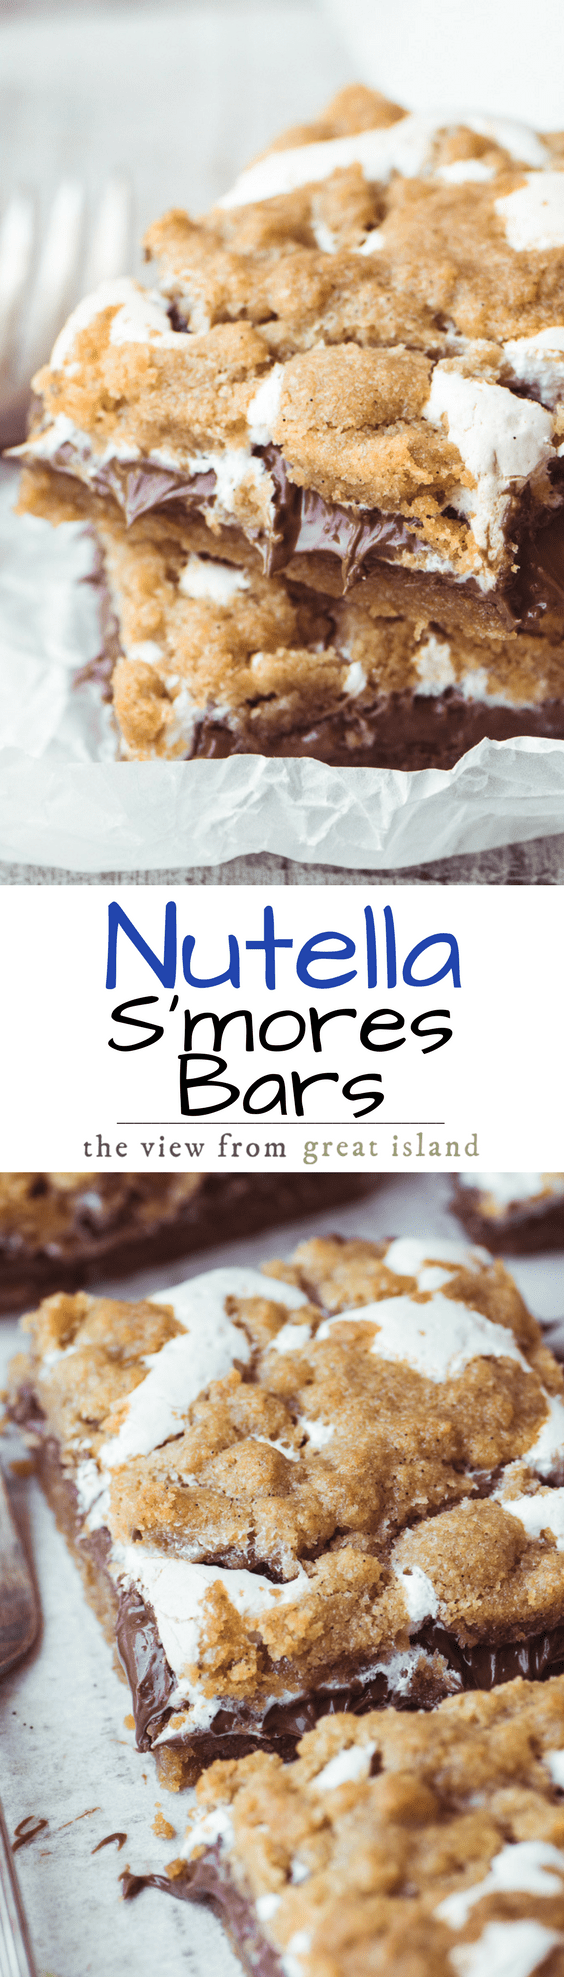 Nutella S'mores Bars ~ everybody's favorite summer treat in an ooey, gooey, decadent, and delicious